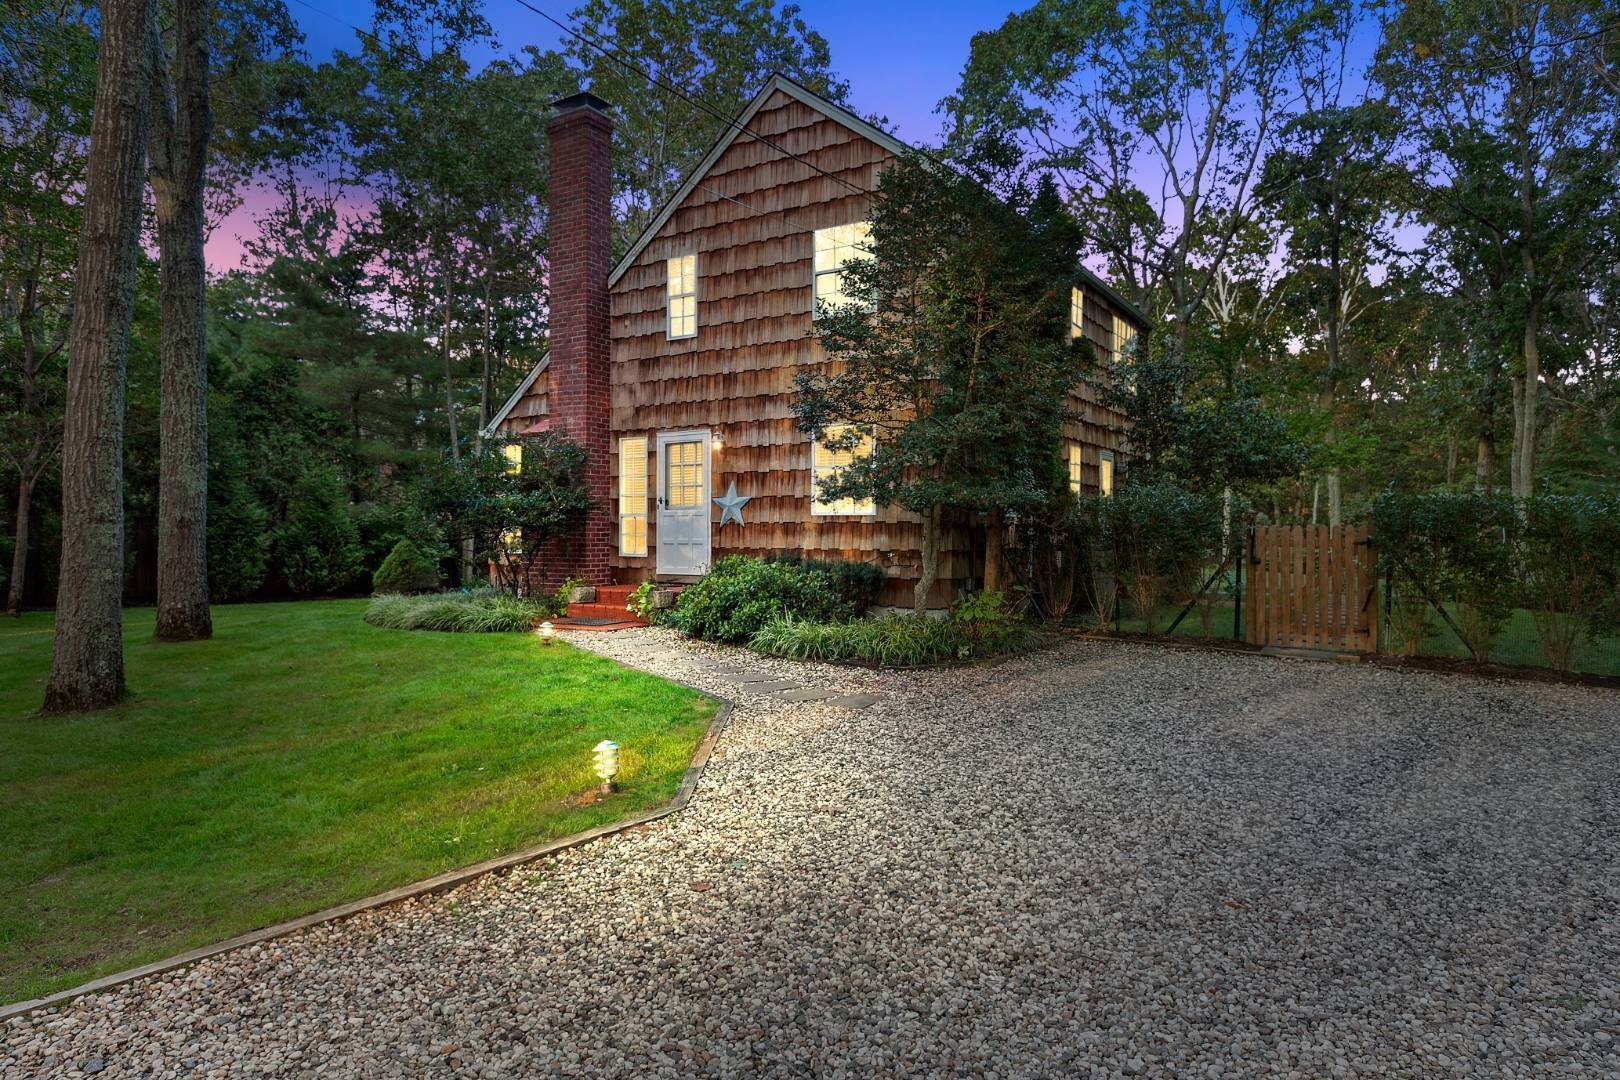 Single Family Home for Sale at Sag Harbor Serenity 72 Laurel Lane, Sag Harbor South, NY 11963